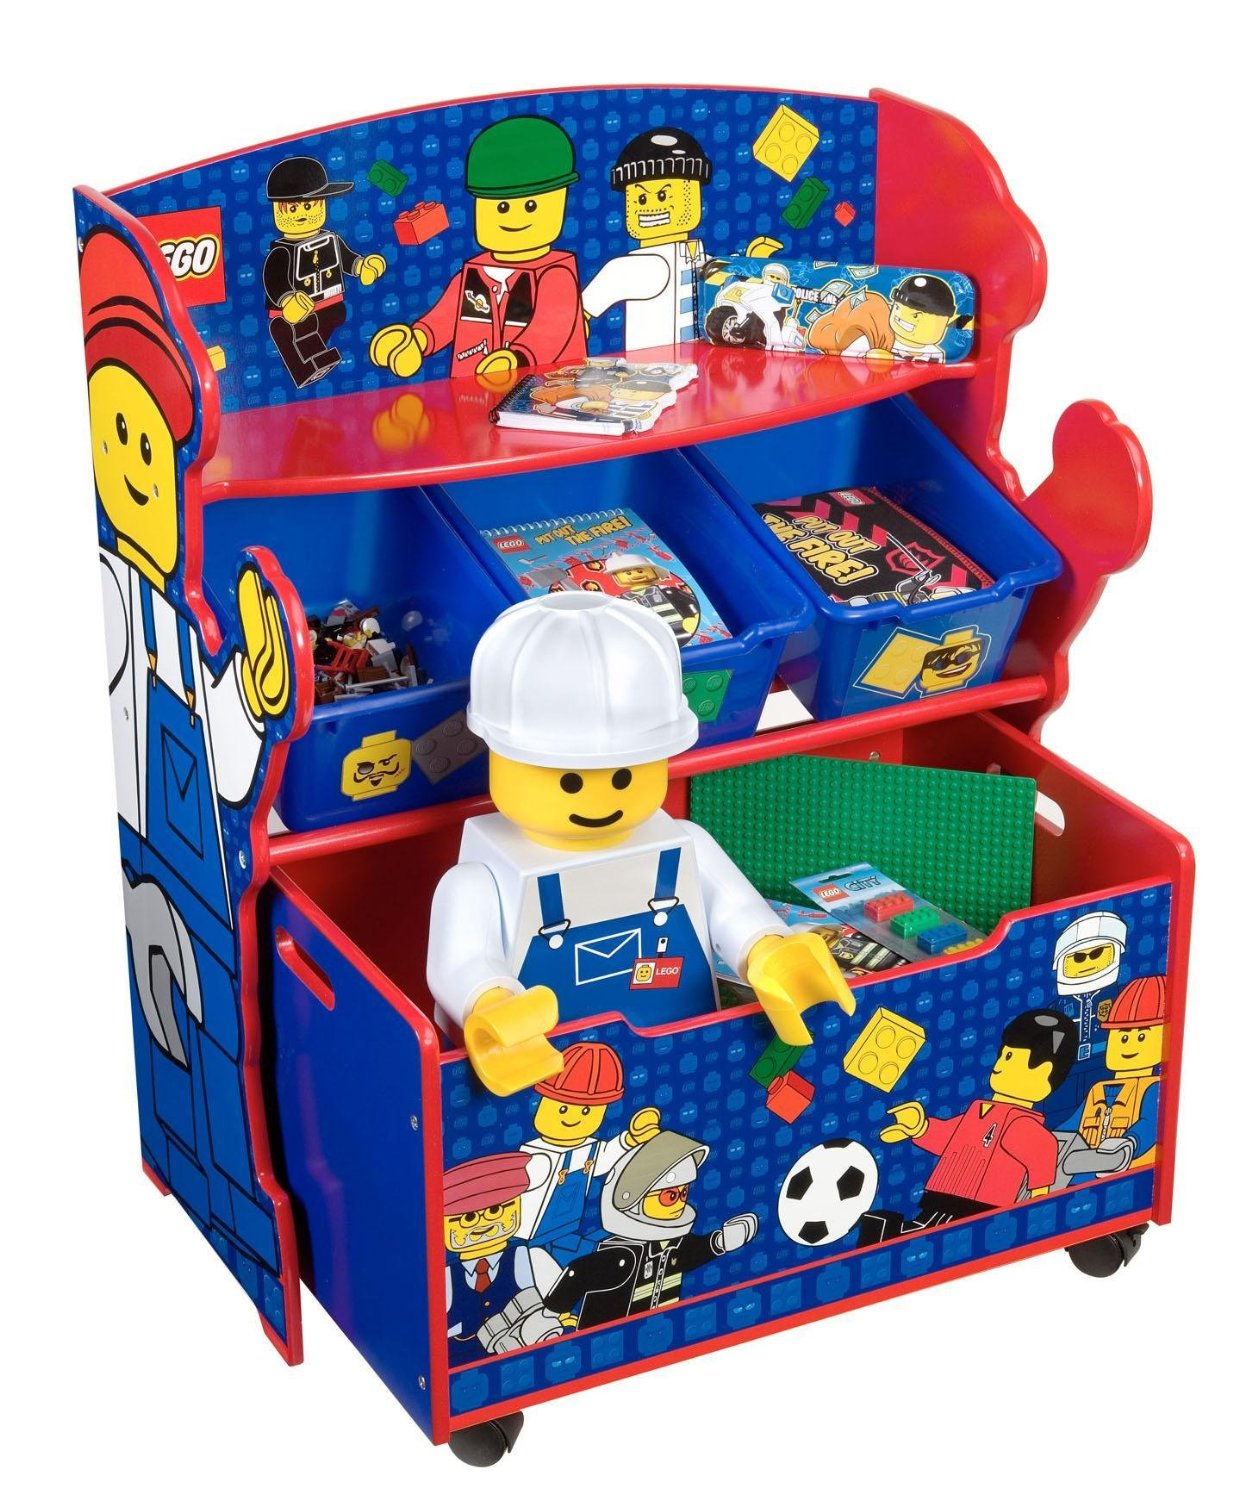 81zBaE1UXrL._SL1500_  sc 1 st  Box4Blox & Shopping For Lego Storage Unit with Trundle Bin?